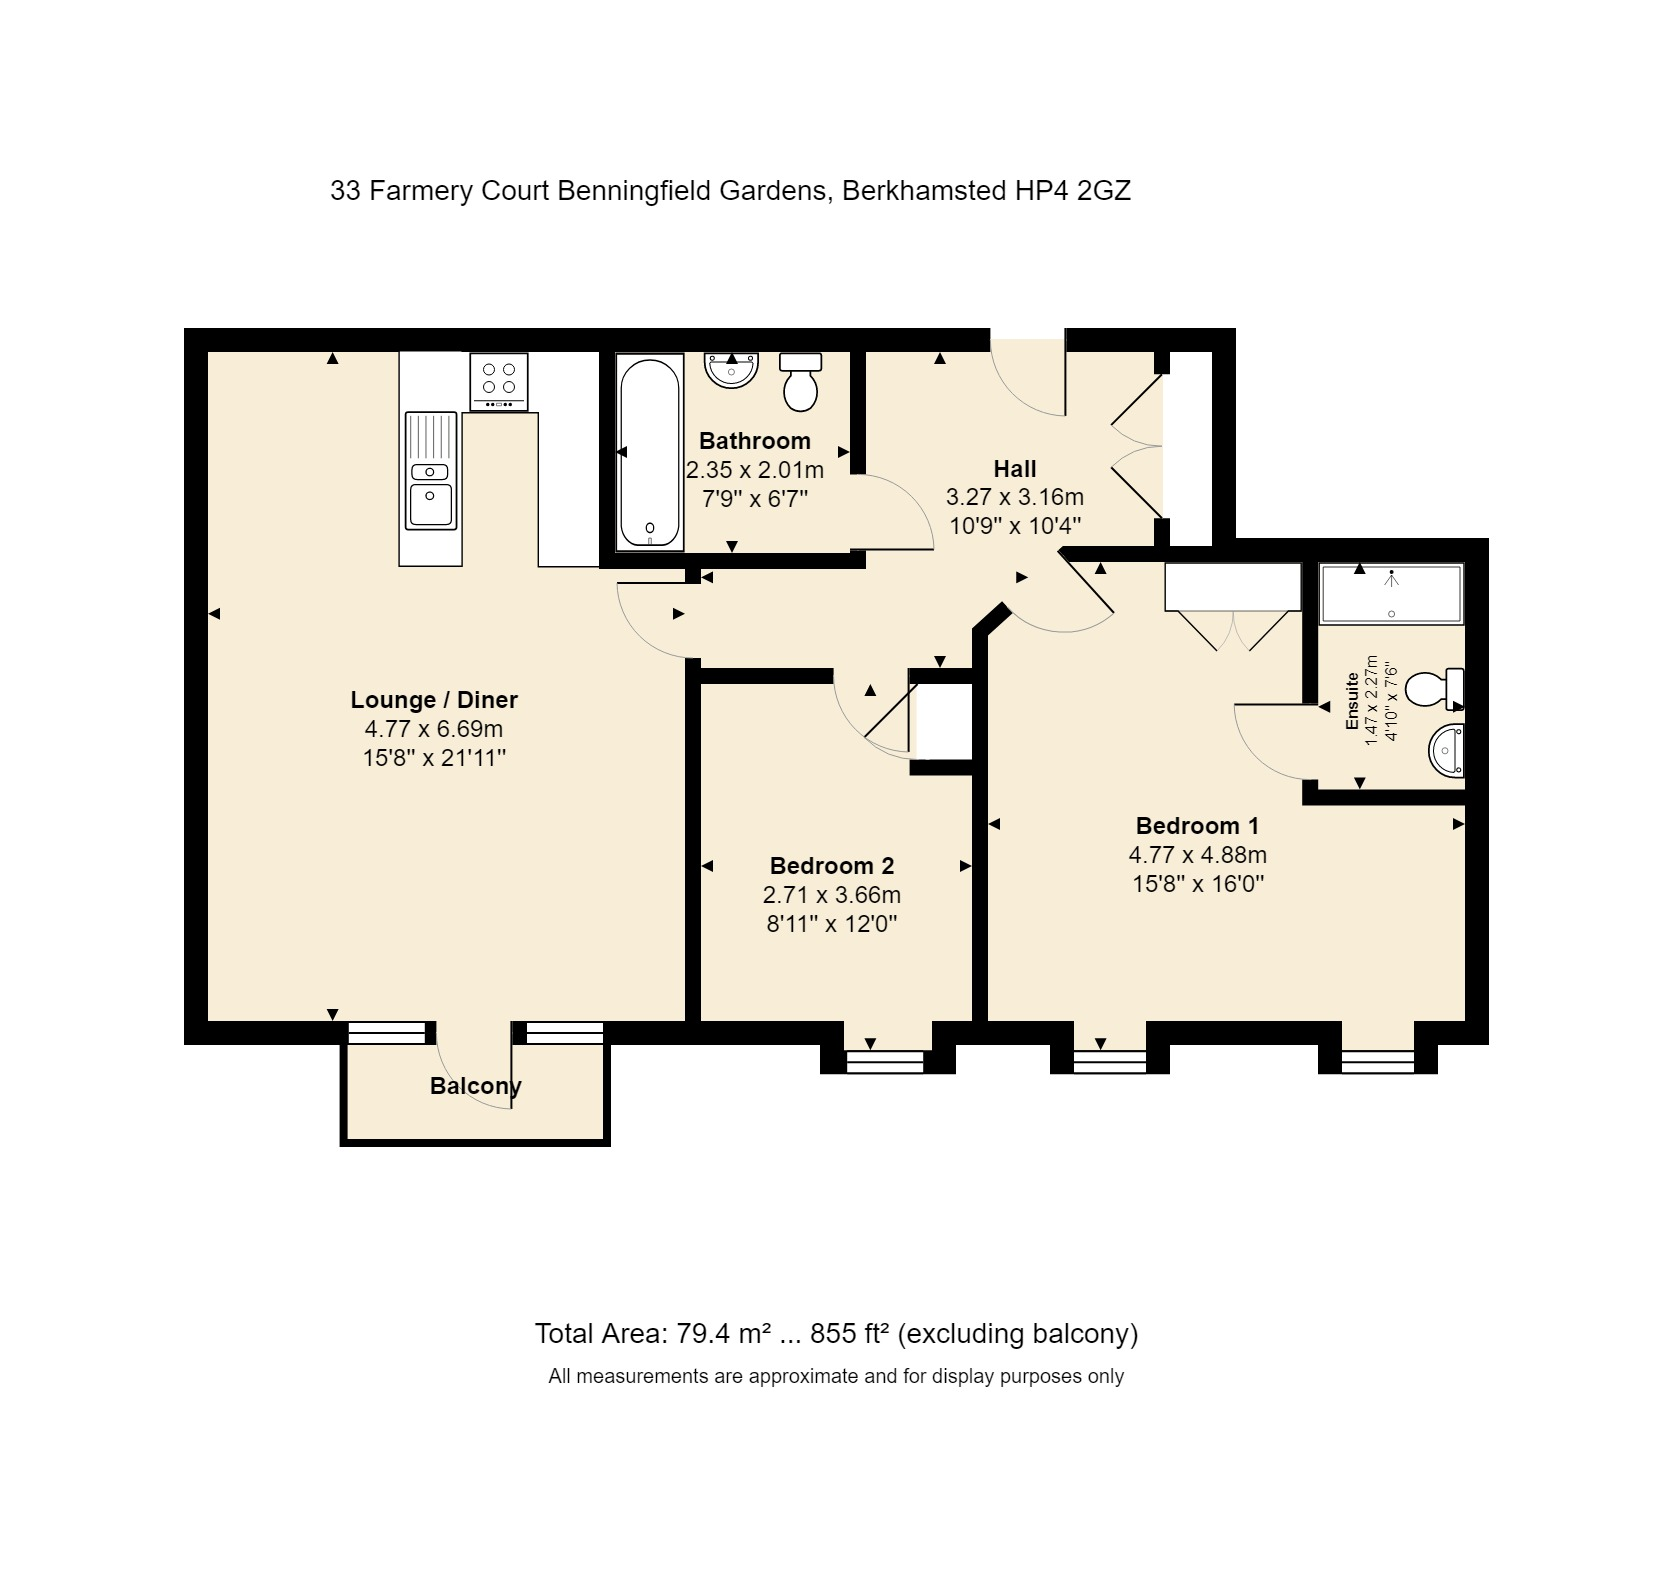 33 Farmery Court Floorplan